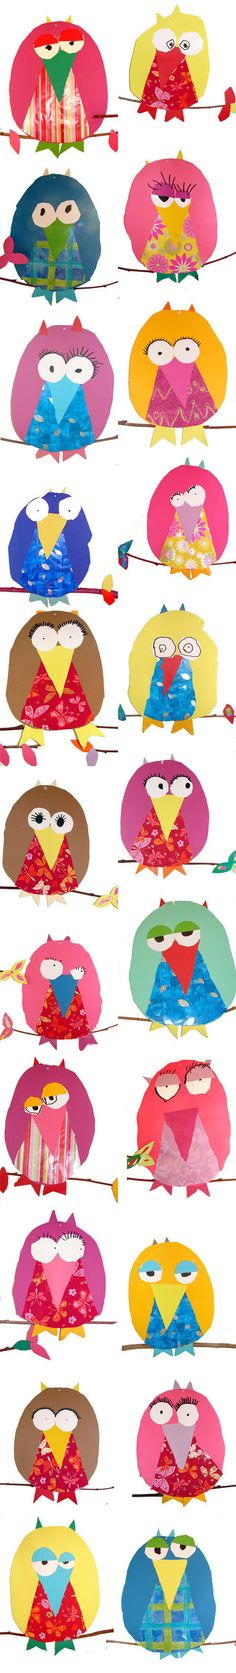 Children's craft table: Provide owl shapes and templates of the eyes and beak to trace and cut out on their own. Slaughter = you must do this (or I will with the wee cherubs/owlets) Kindergarten Art, Preschool Art, Owl Art, Bird Art, Classe D'art, Art For Kids, Crafts For Kids, Ecole Art, School Art Projects